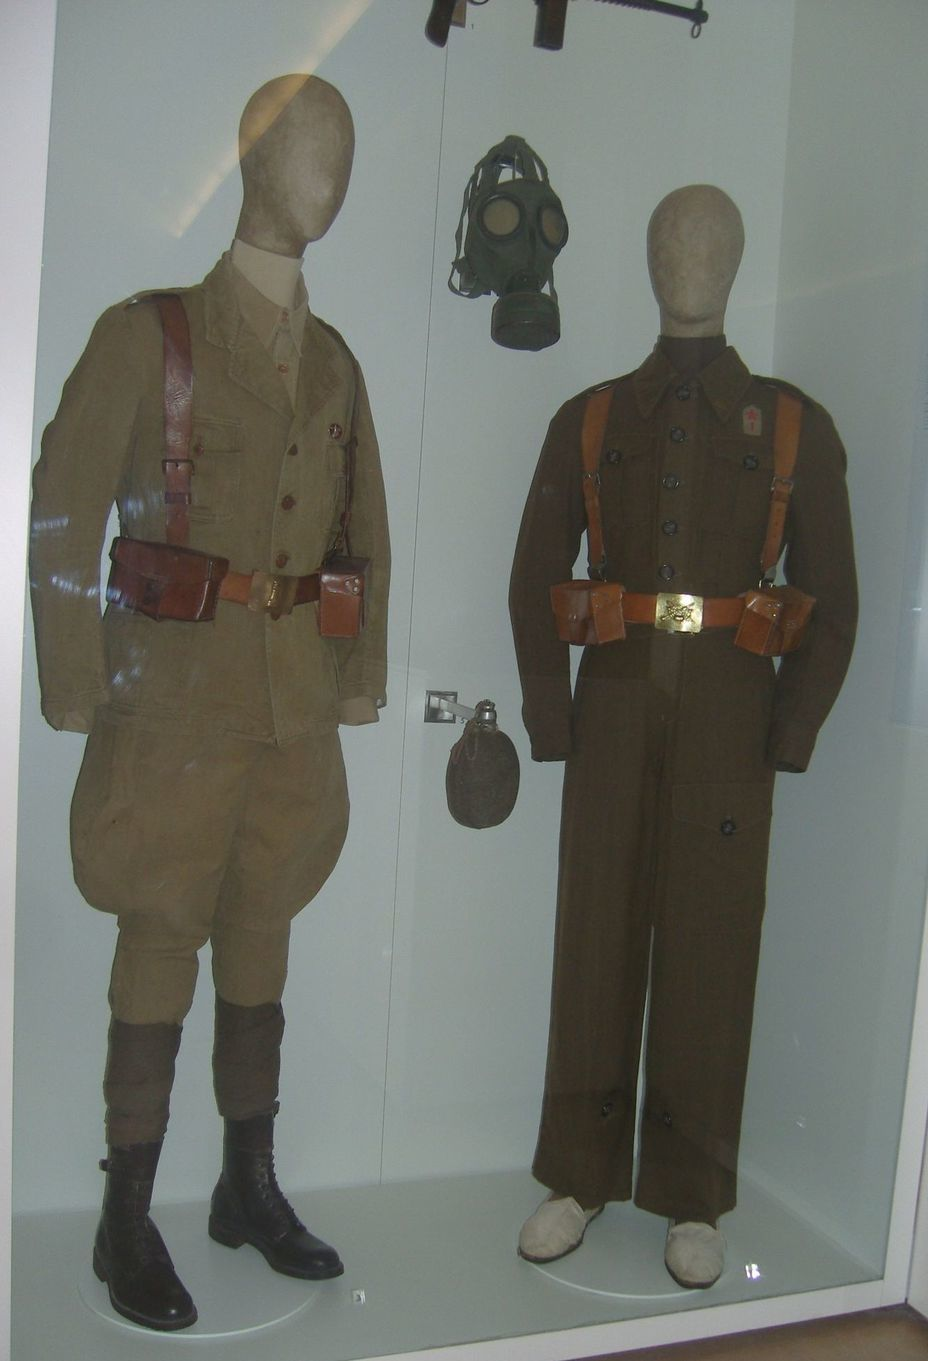 ​Uniforms of a soldier (left) and sergeant (right) of the Republican army. Spanish Civil War 1936-1939. Photo by the author - In memory of past greatness | Warspot.net